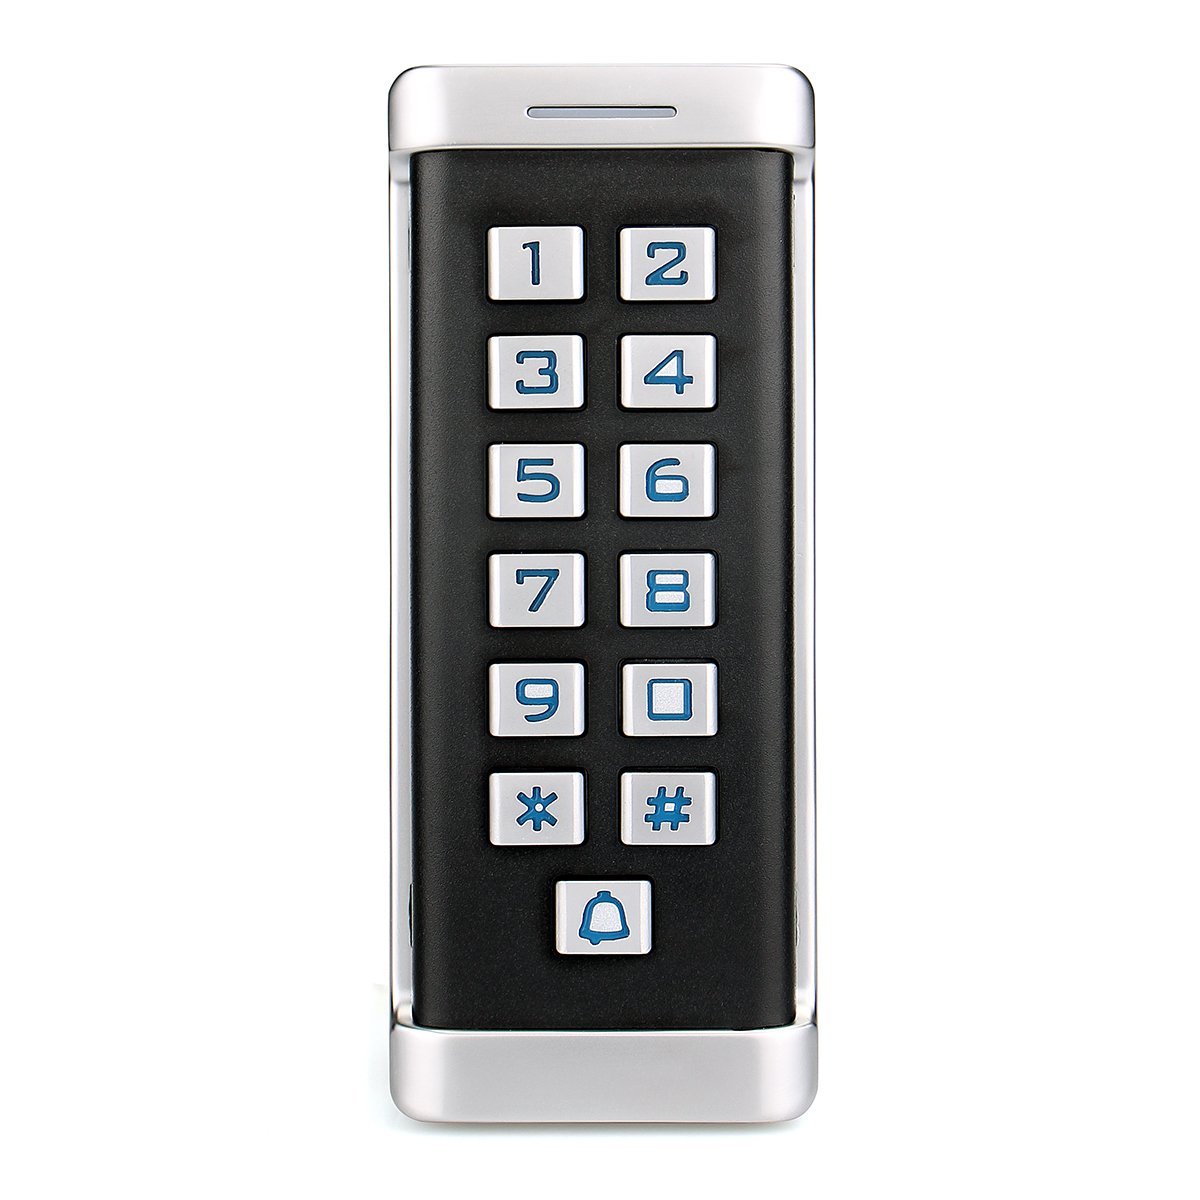 TIVDIO H1EM-W Access Control Keypad Waterproof IP68 Metal Case RFID 125KHz Keypad Single Door Stand-alone with 2000 Users for Outdoor and Indoor Wiegand 26 bit I/O (Silver)